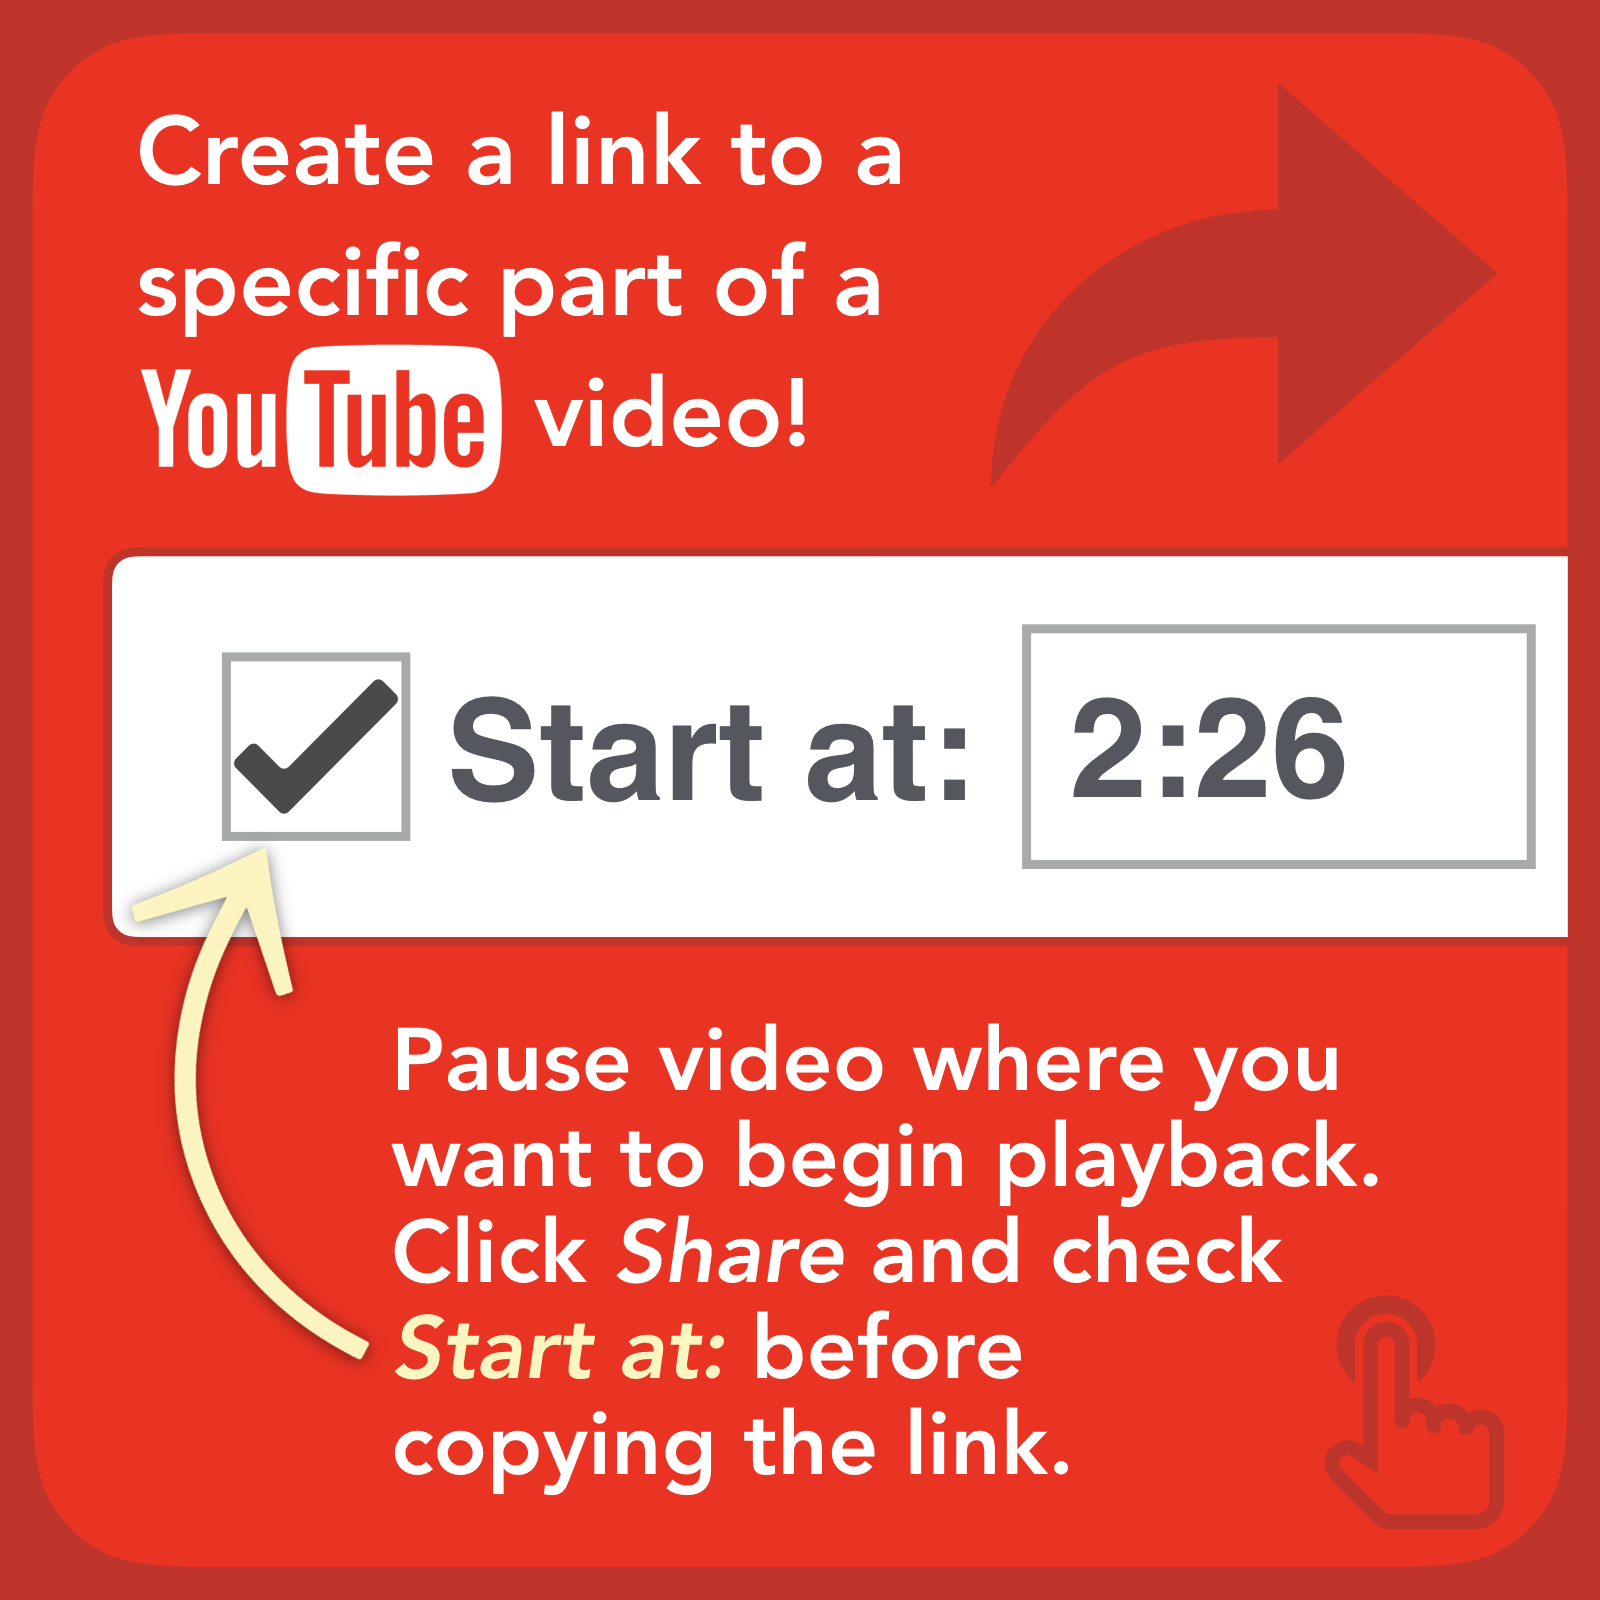 You can create a link to a YouTube video that begins playing at a specified time. This is a great way to skip right into the content you want your audience to view.